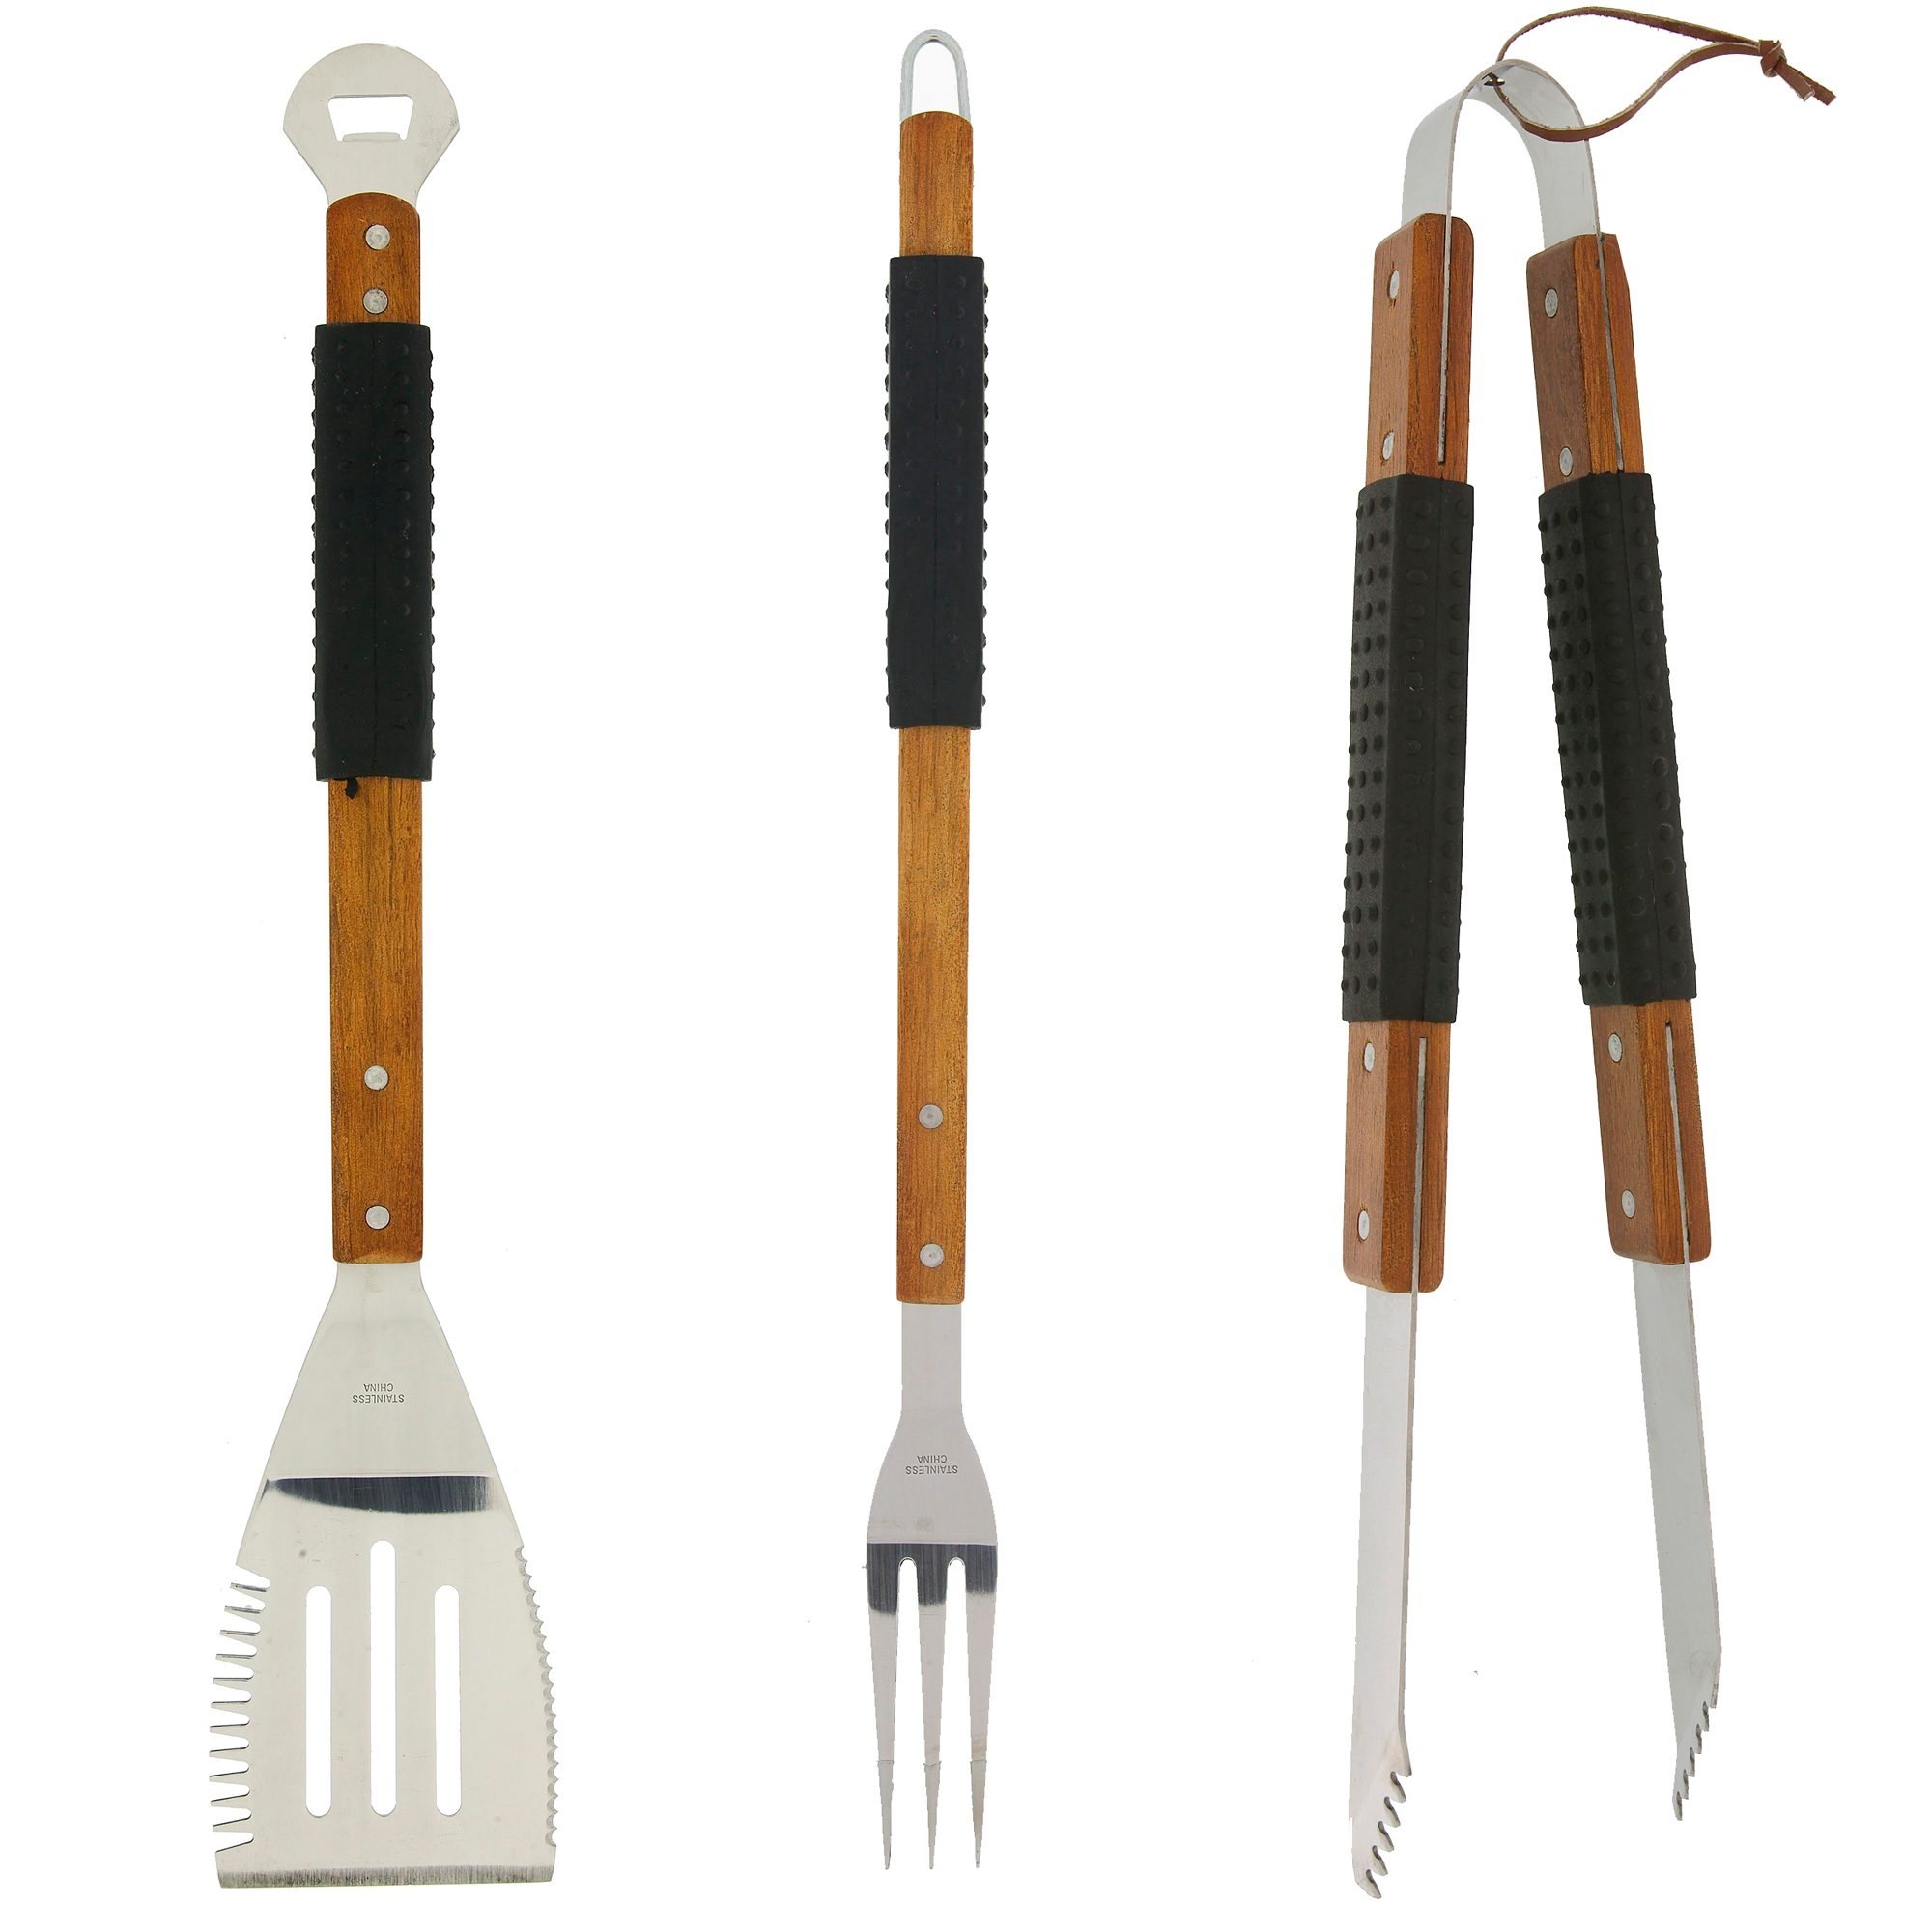 Mr. Bar-B-Q - 3 Piece BBQ Tool Set with Finger Grips and Rosewood Handles